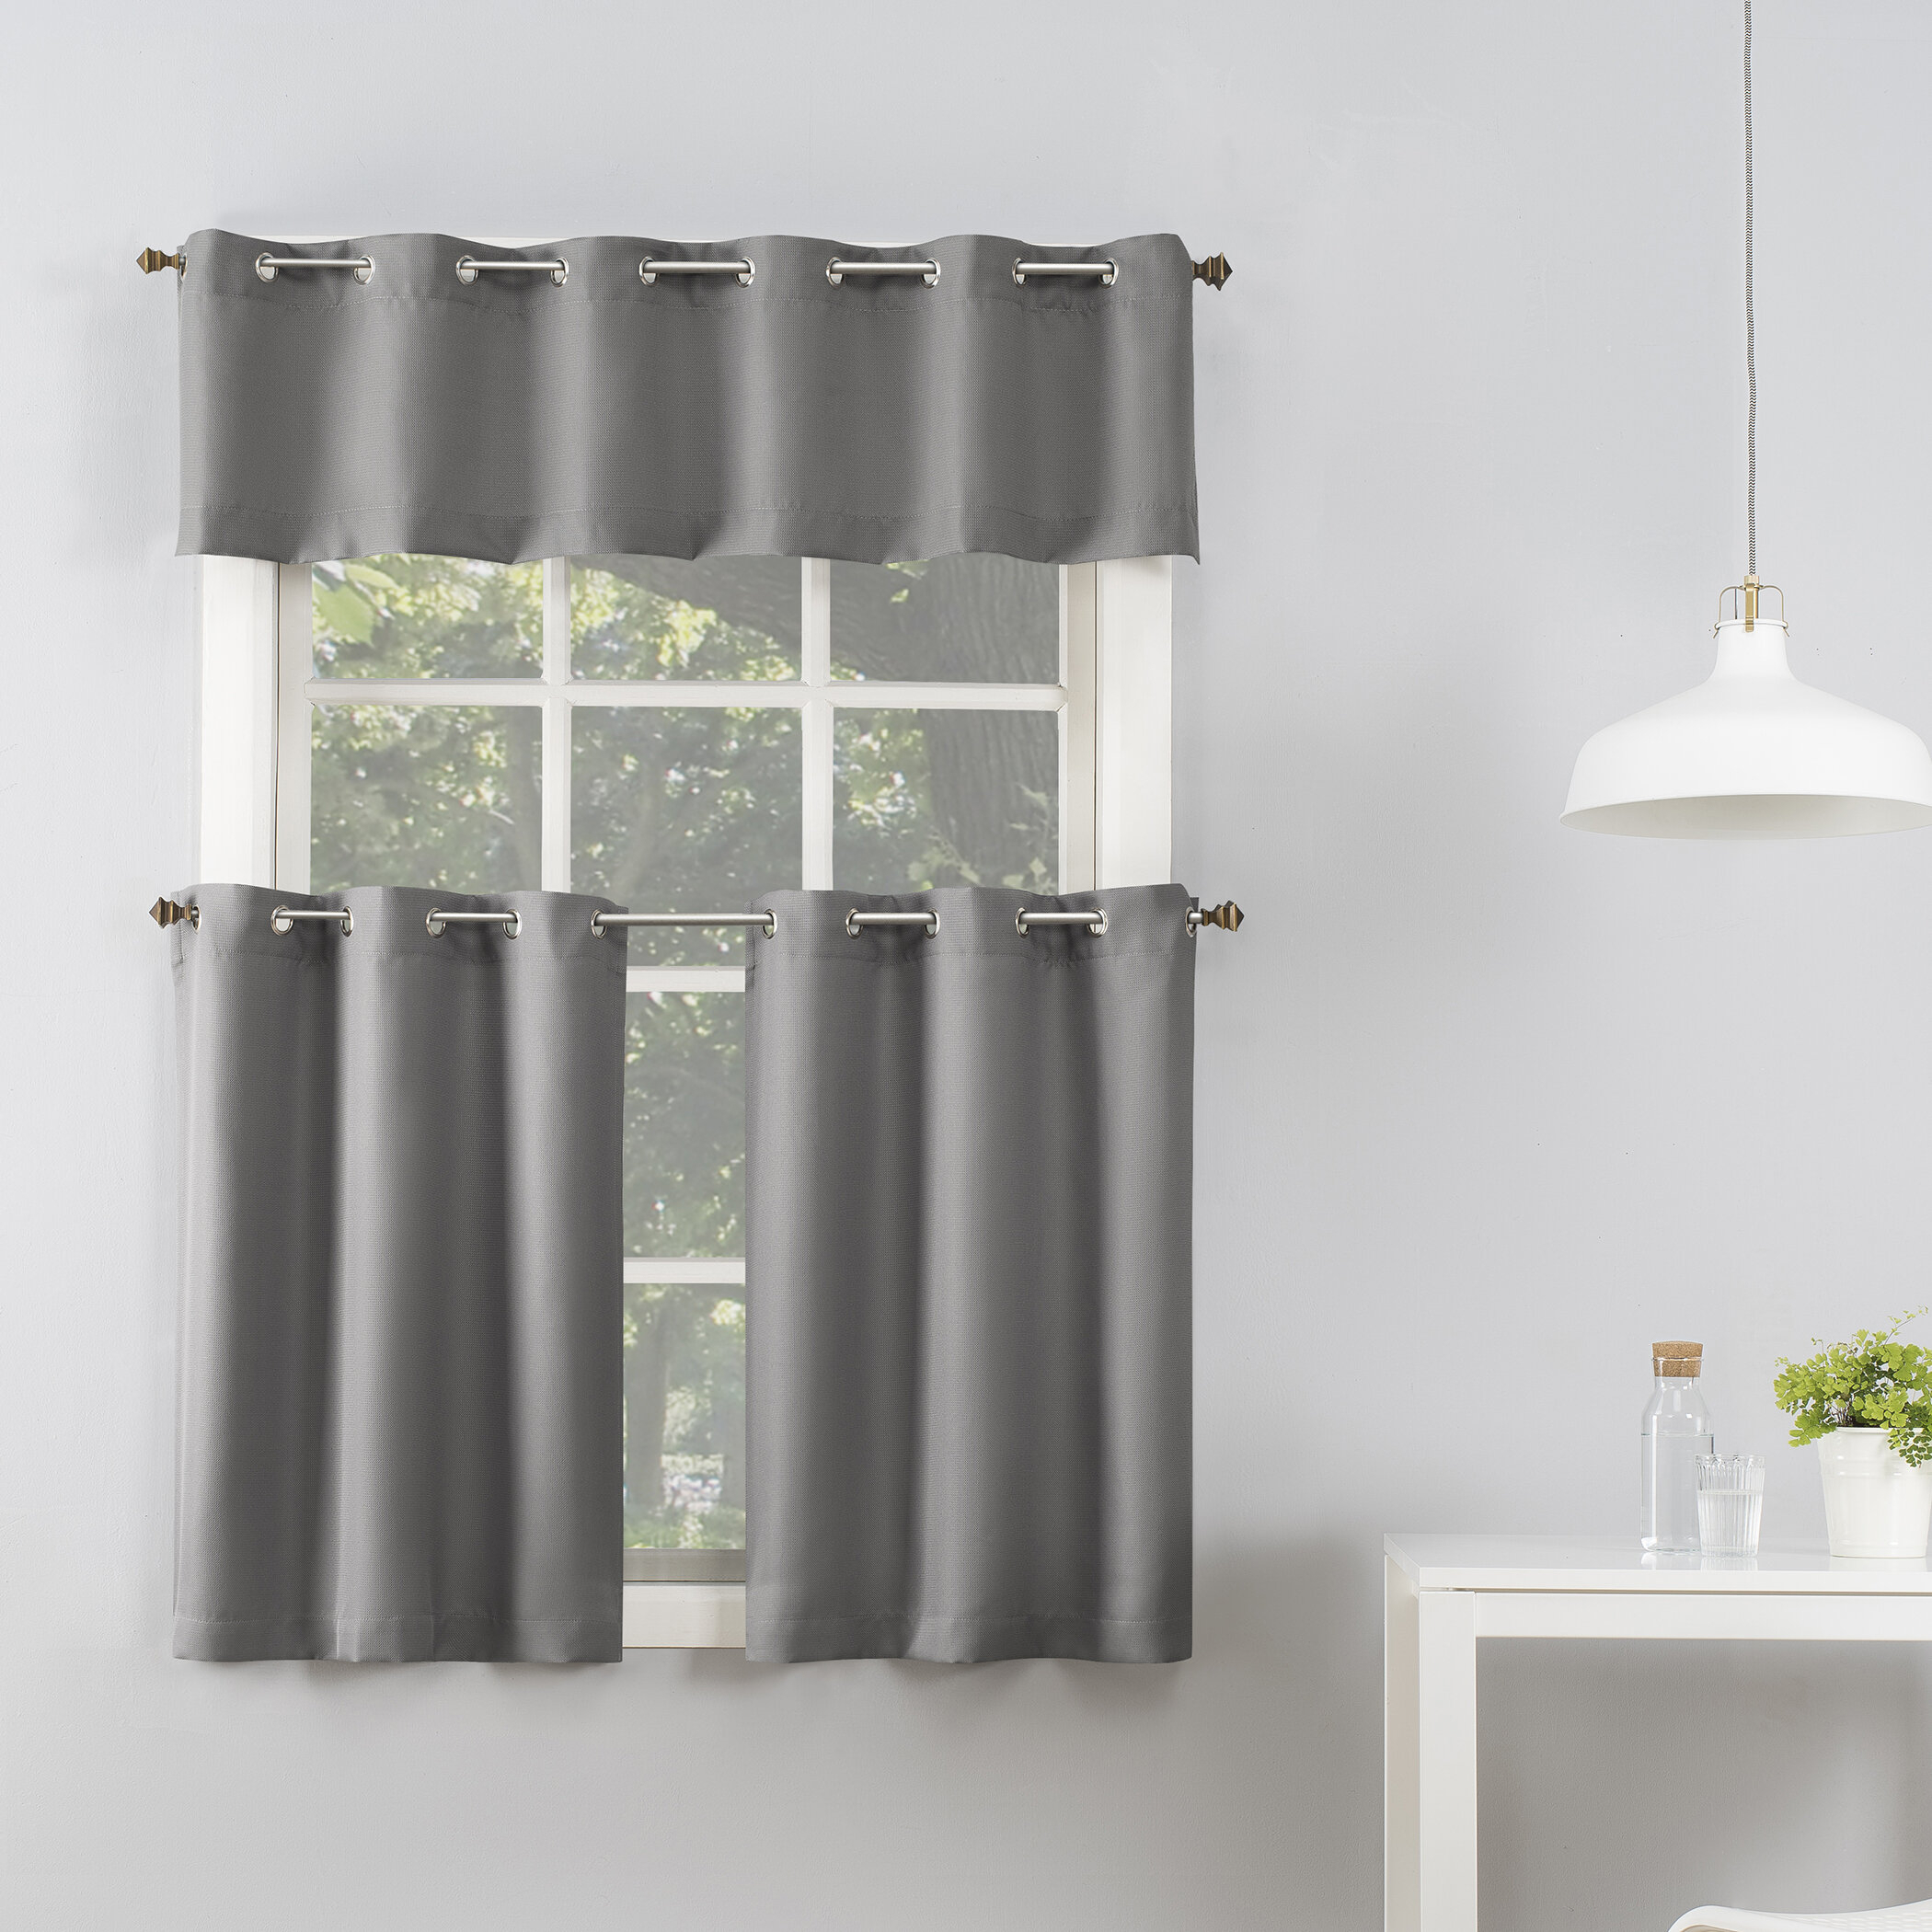 Jakubowski Casual Textured 3 Piece Semi Sheer Grommet Tier And Kitchen Window Valance Inside Semi Sheer Rod Pocket Kitchen Curtain Valance And Tiers Sets (View 11 of 20)